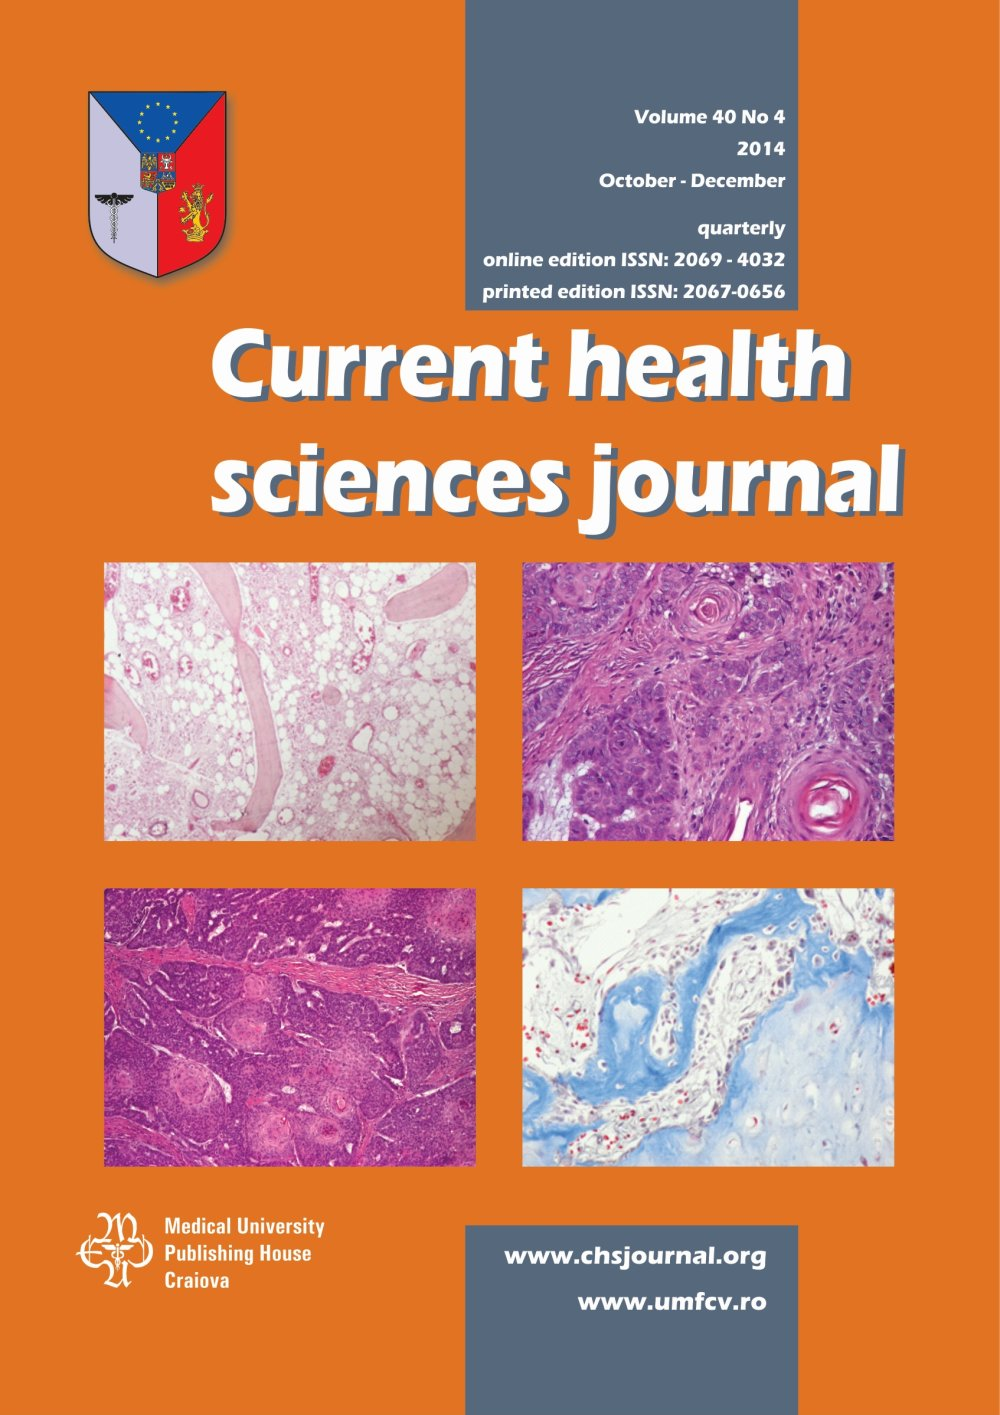 Current Health Sciences Journal, vol. 40 no. 4, 2014